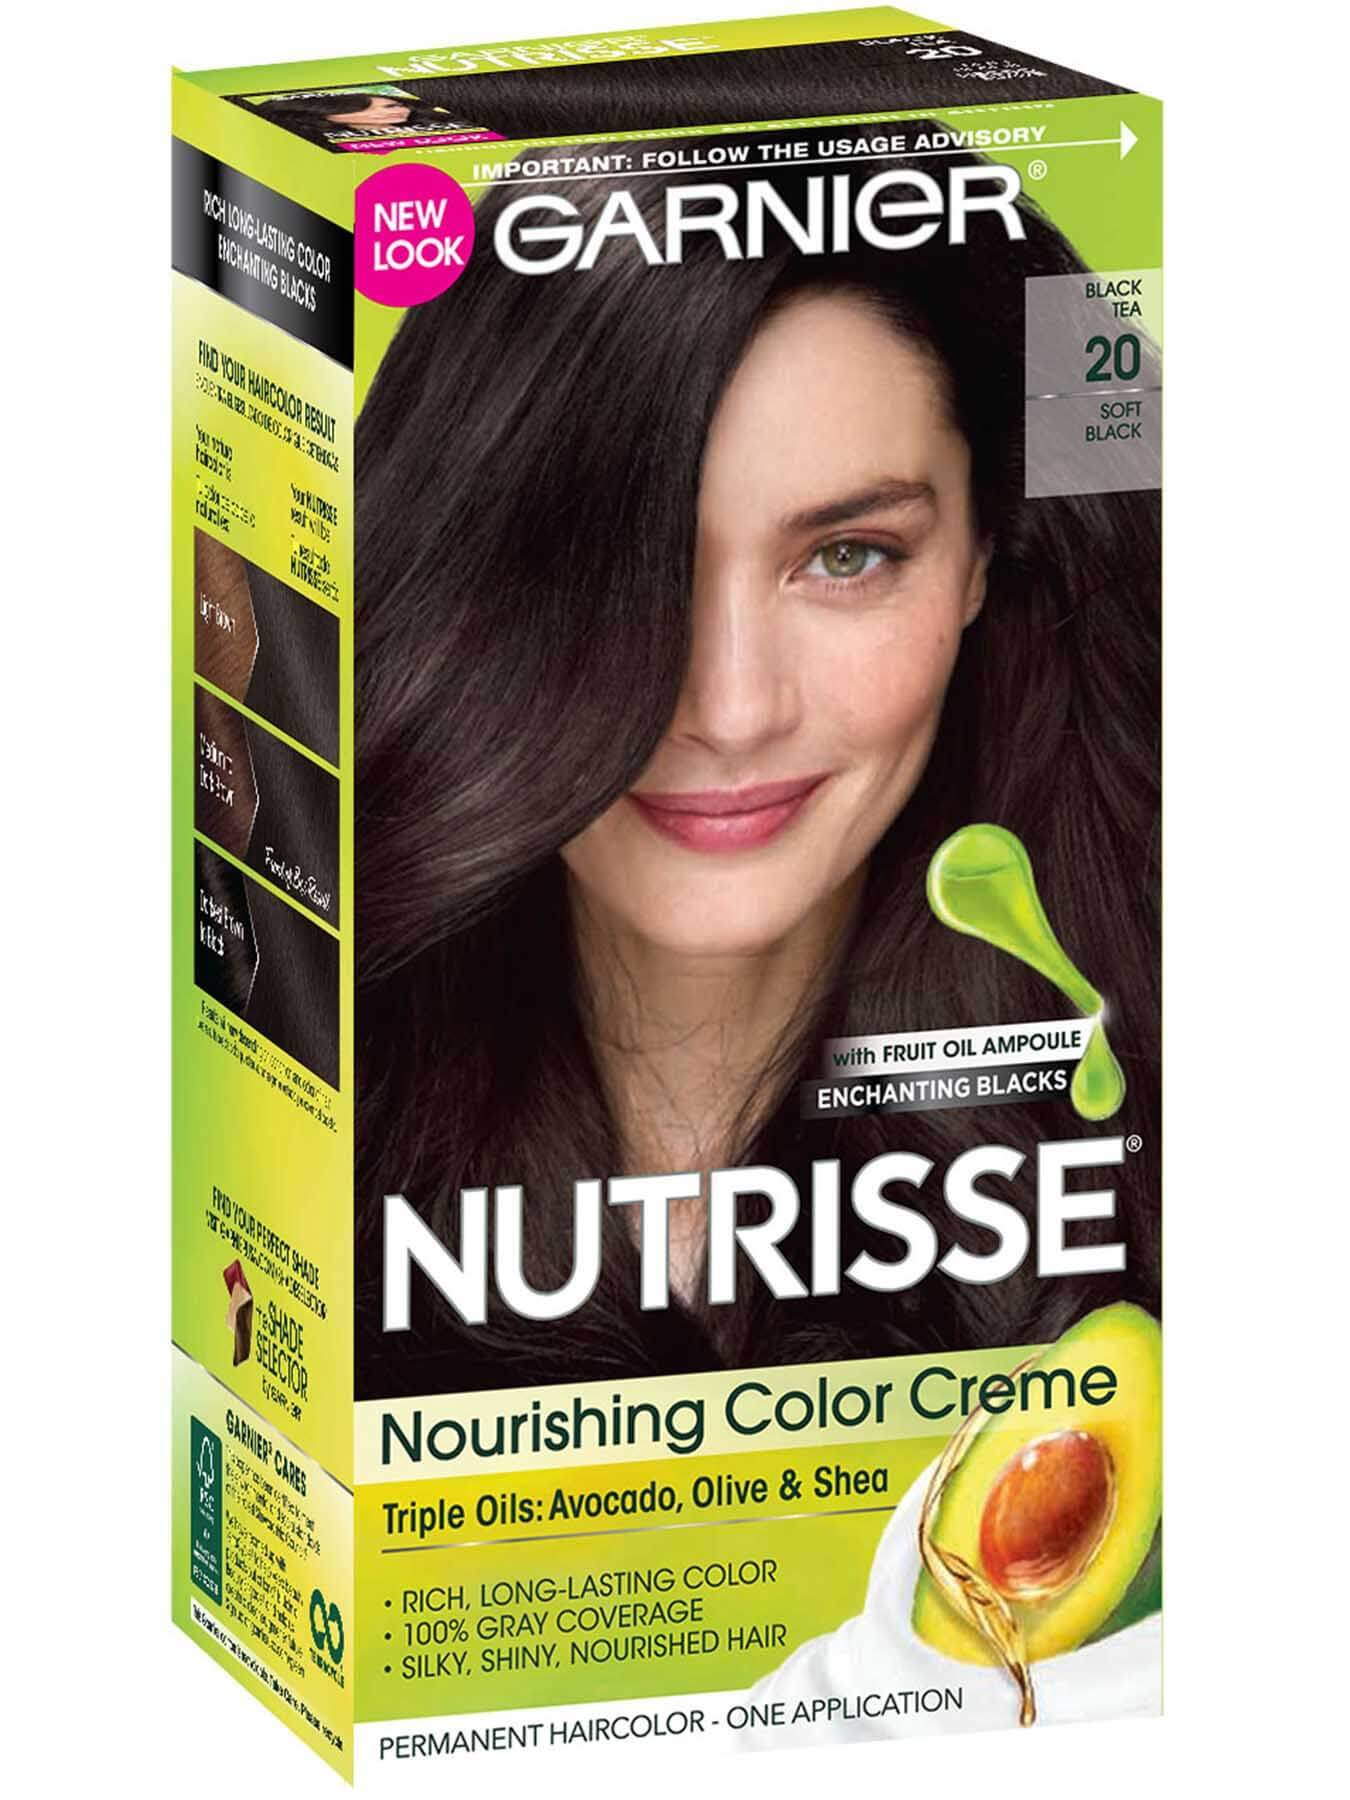 Nutrisse Nourishing Color Creme Soft Black 20 Black Tea